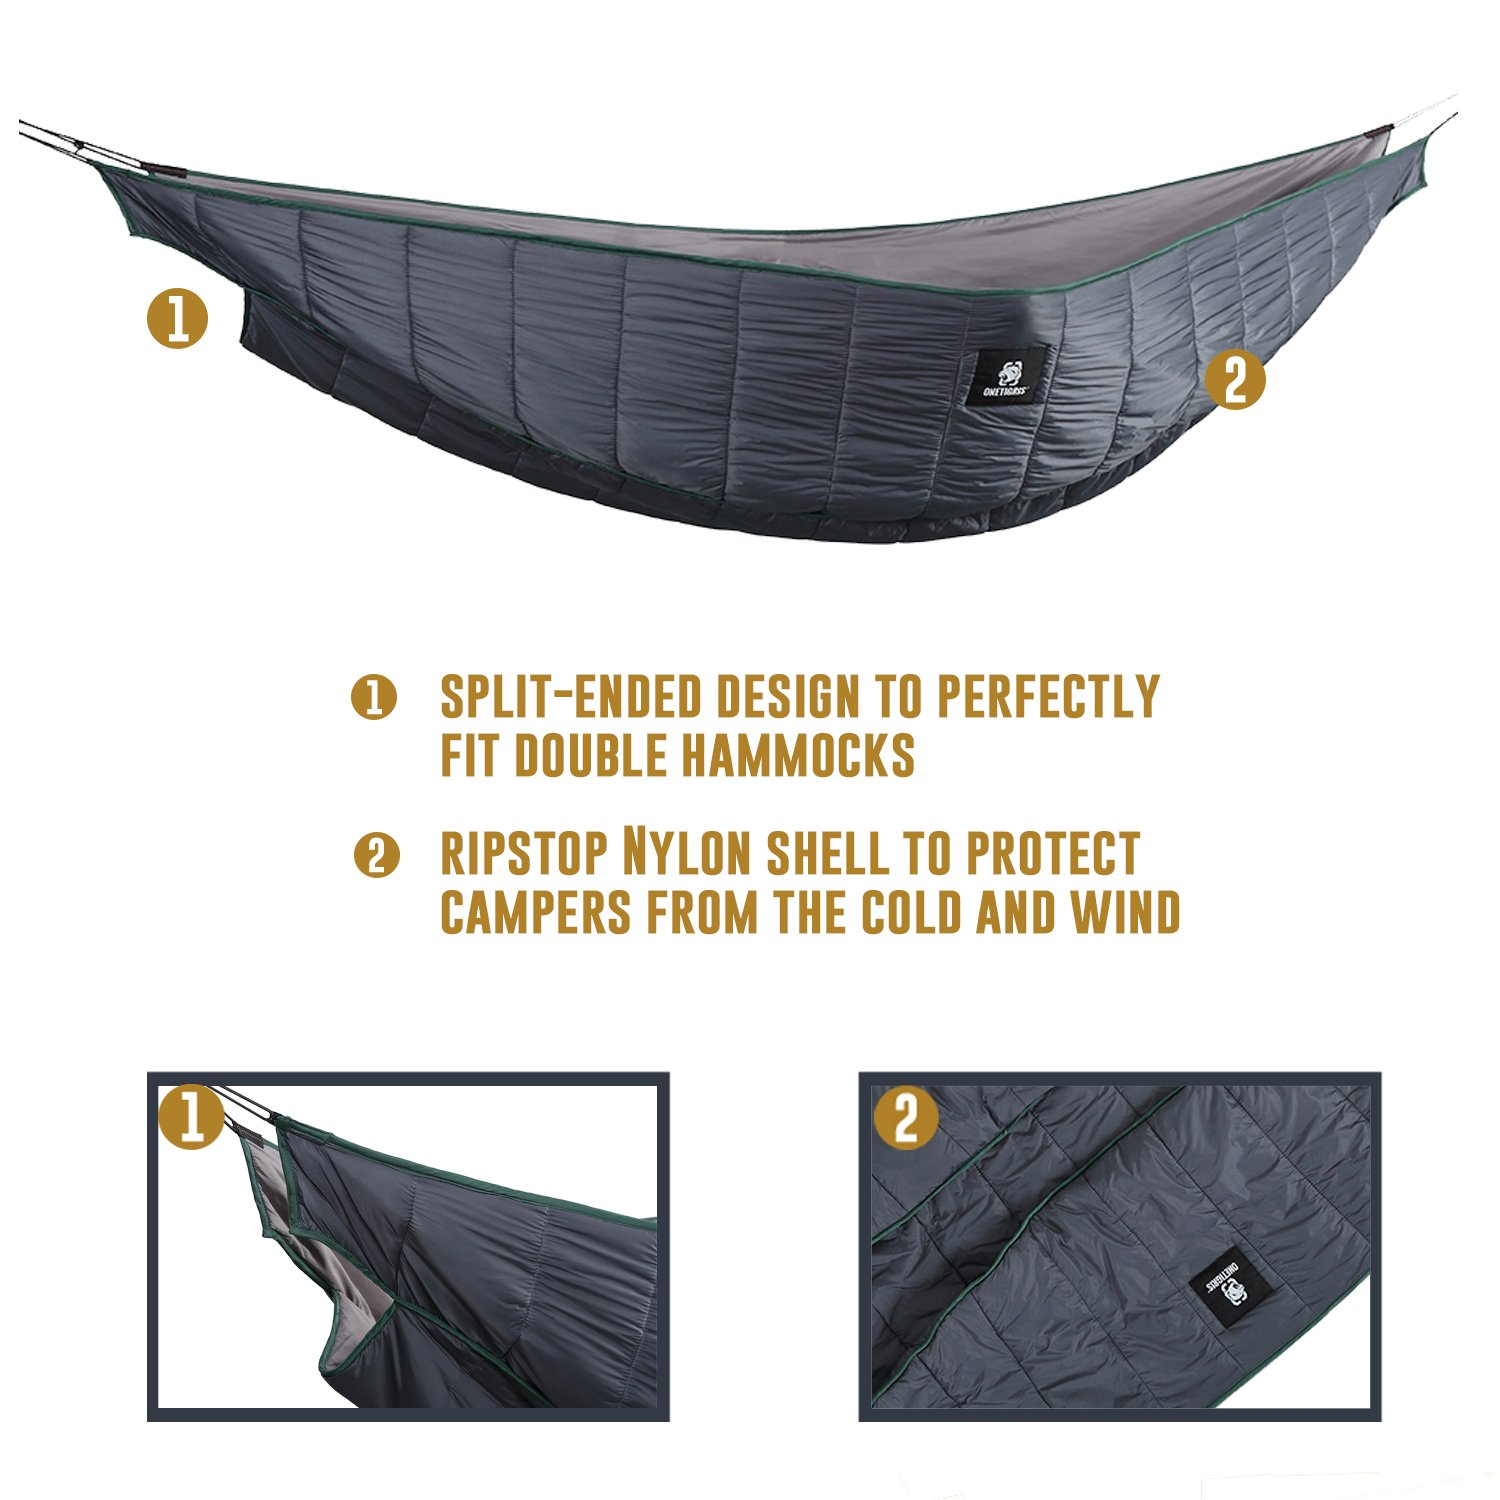 5 C To 20 C Search For Flights Onetigris Double Hammock Under-quilt Lightweight Full Length Hammock Underquilt Under Blanket 40 F To 68 F High Standard In Quality And Hygiene